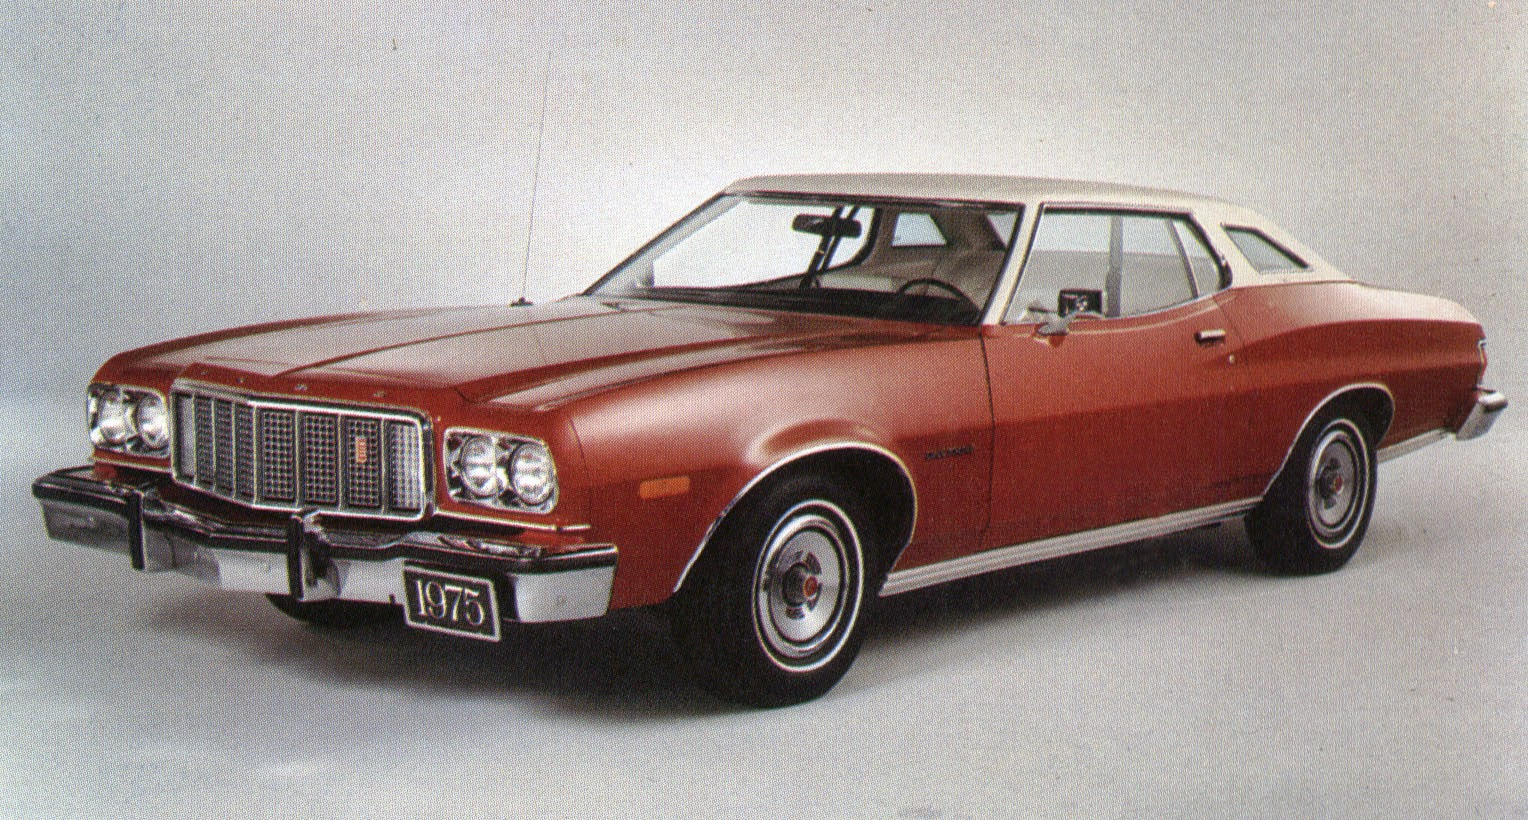 gran torino and up 1976 ford gran torino auto parts  select your preferred location and we'll note which parts are ready to be picked up today popular ford gran torino part types.